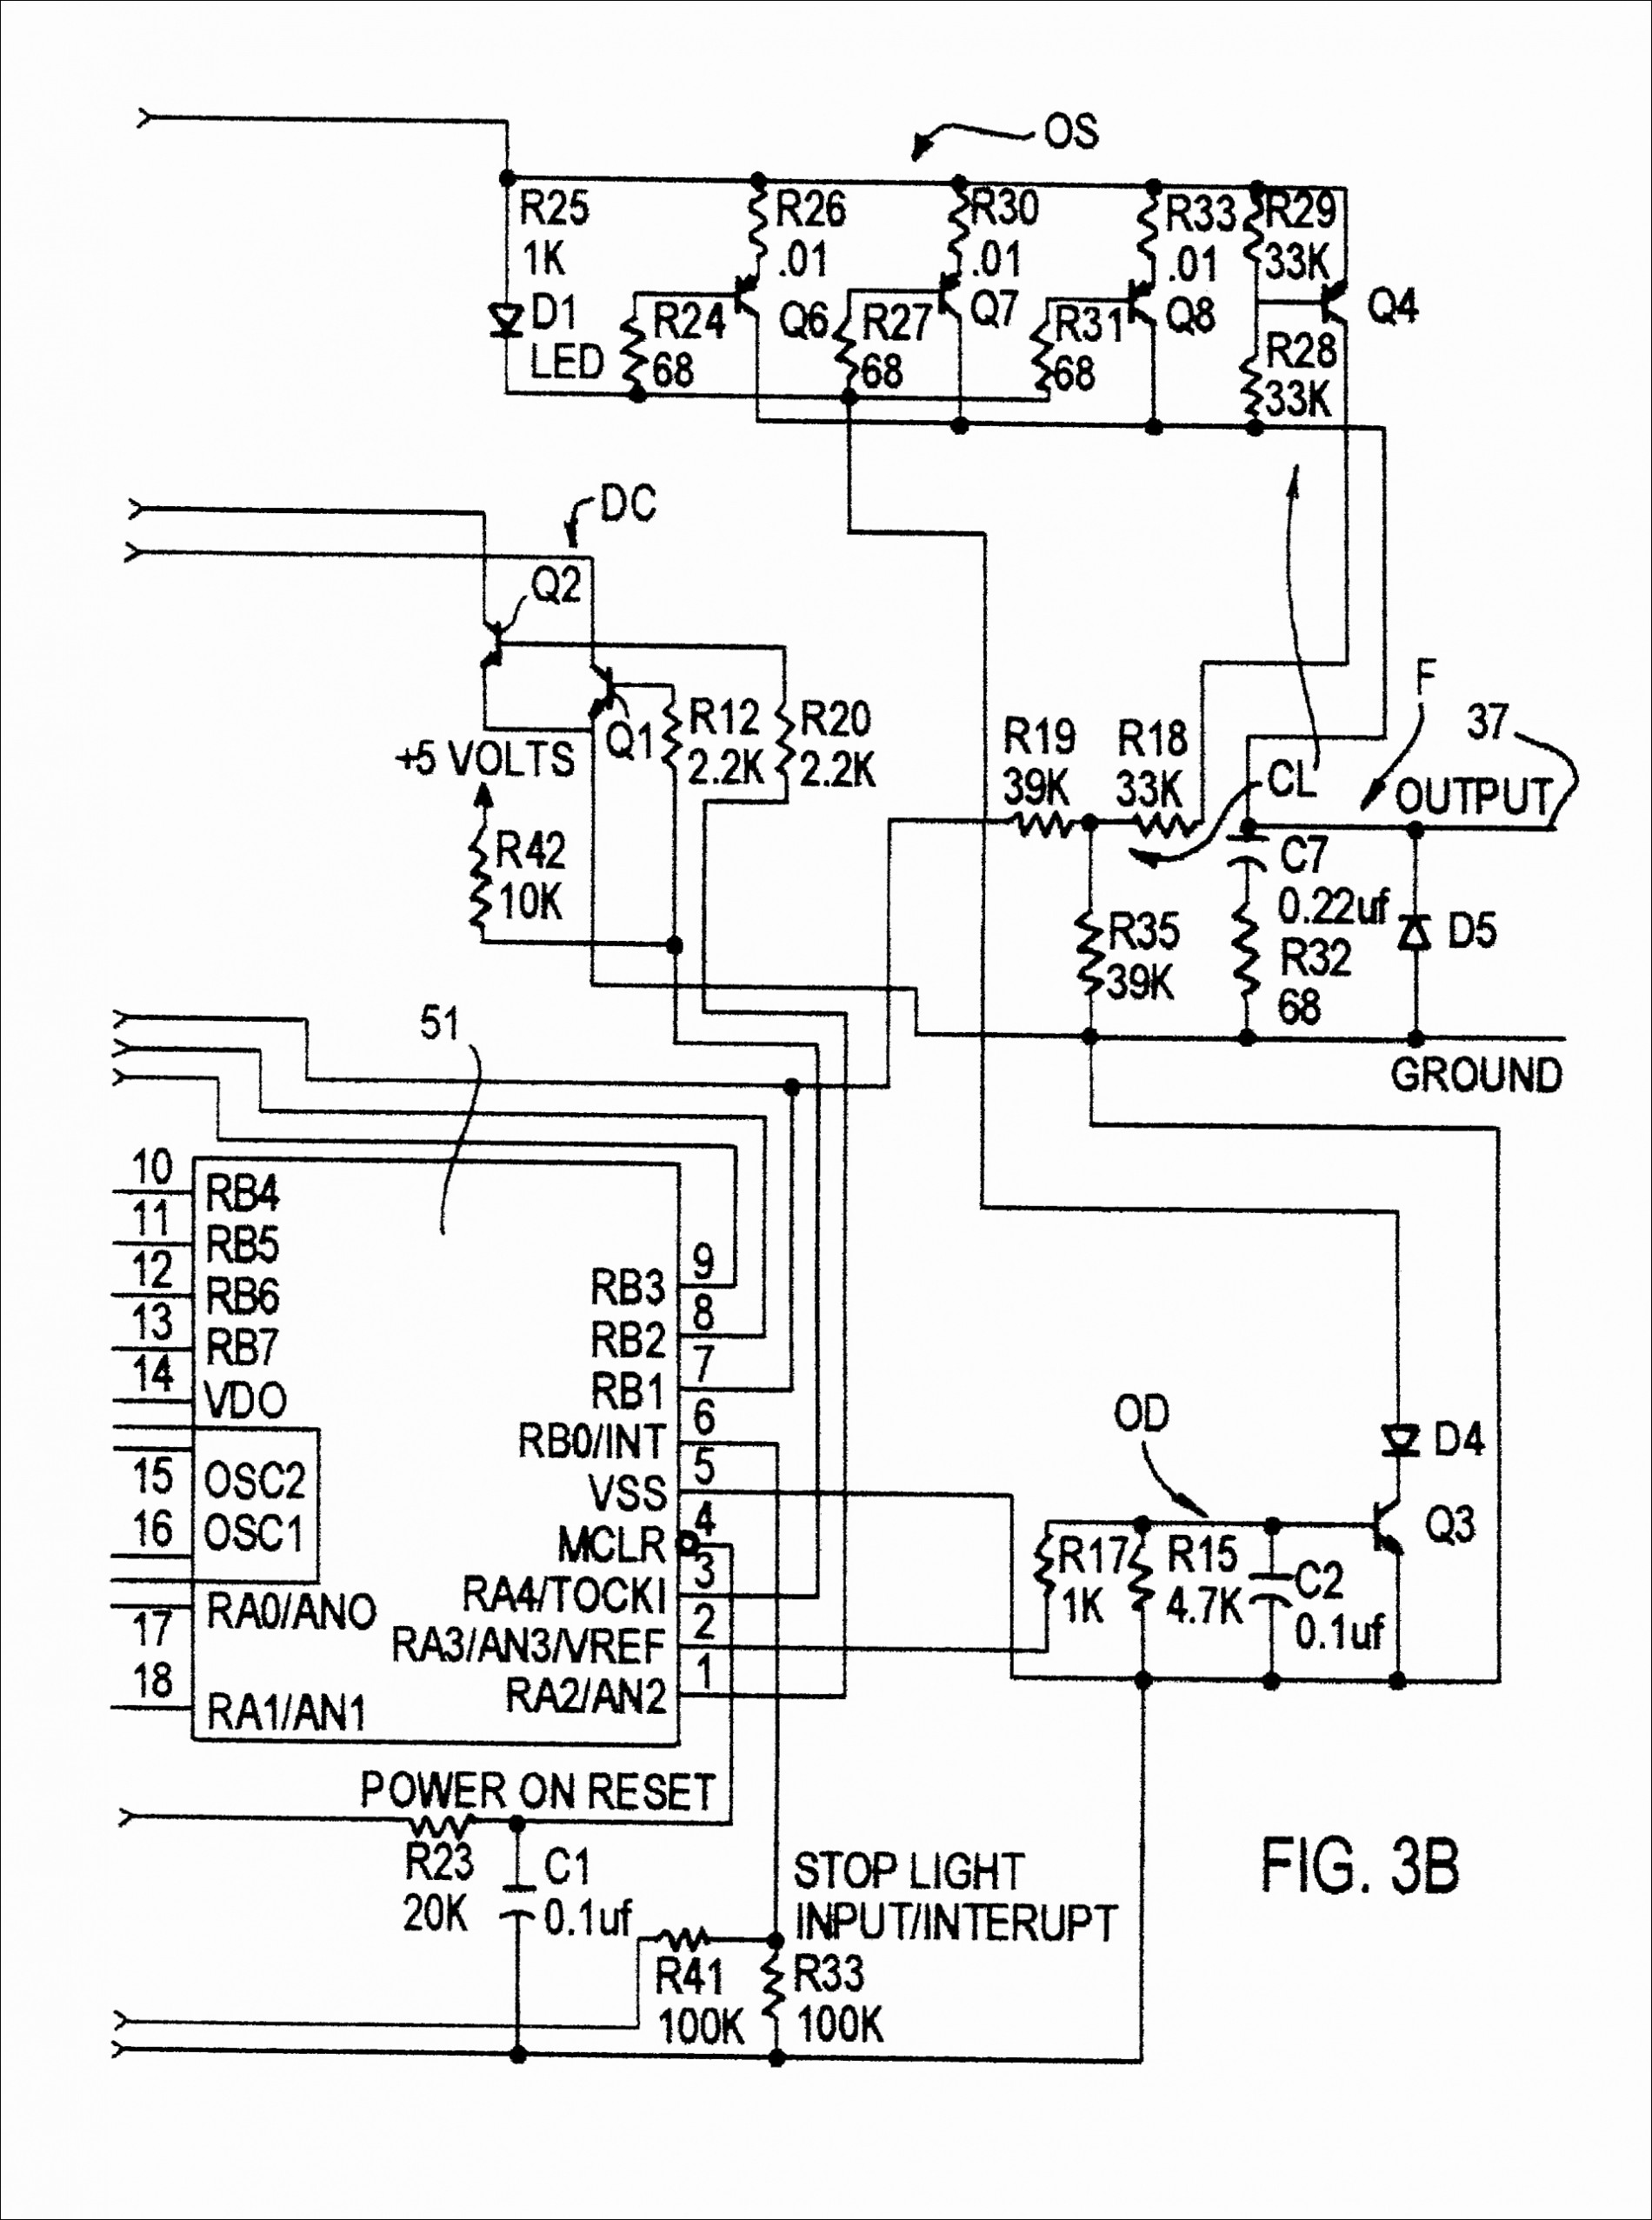 Pocket Bike Wiring Diagram Fresh Electric Scooter Wiring Diagram Owners Manual Gior Voy Owner S